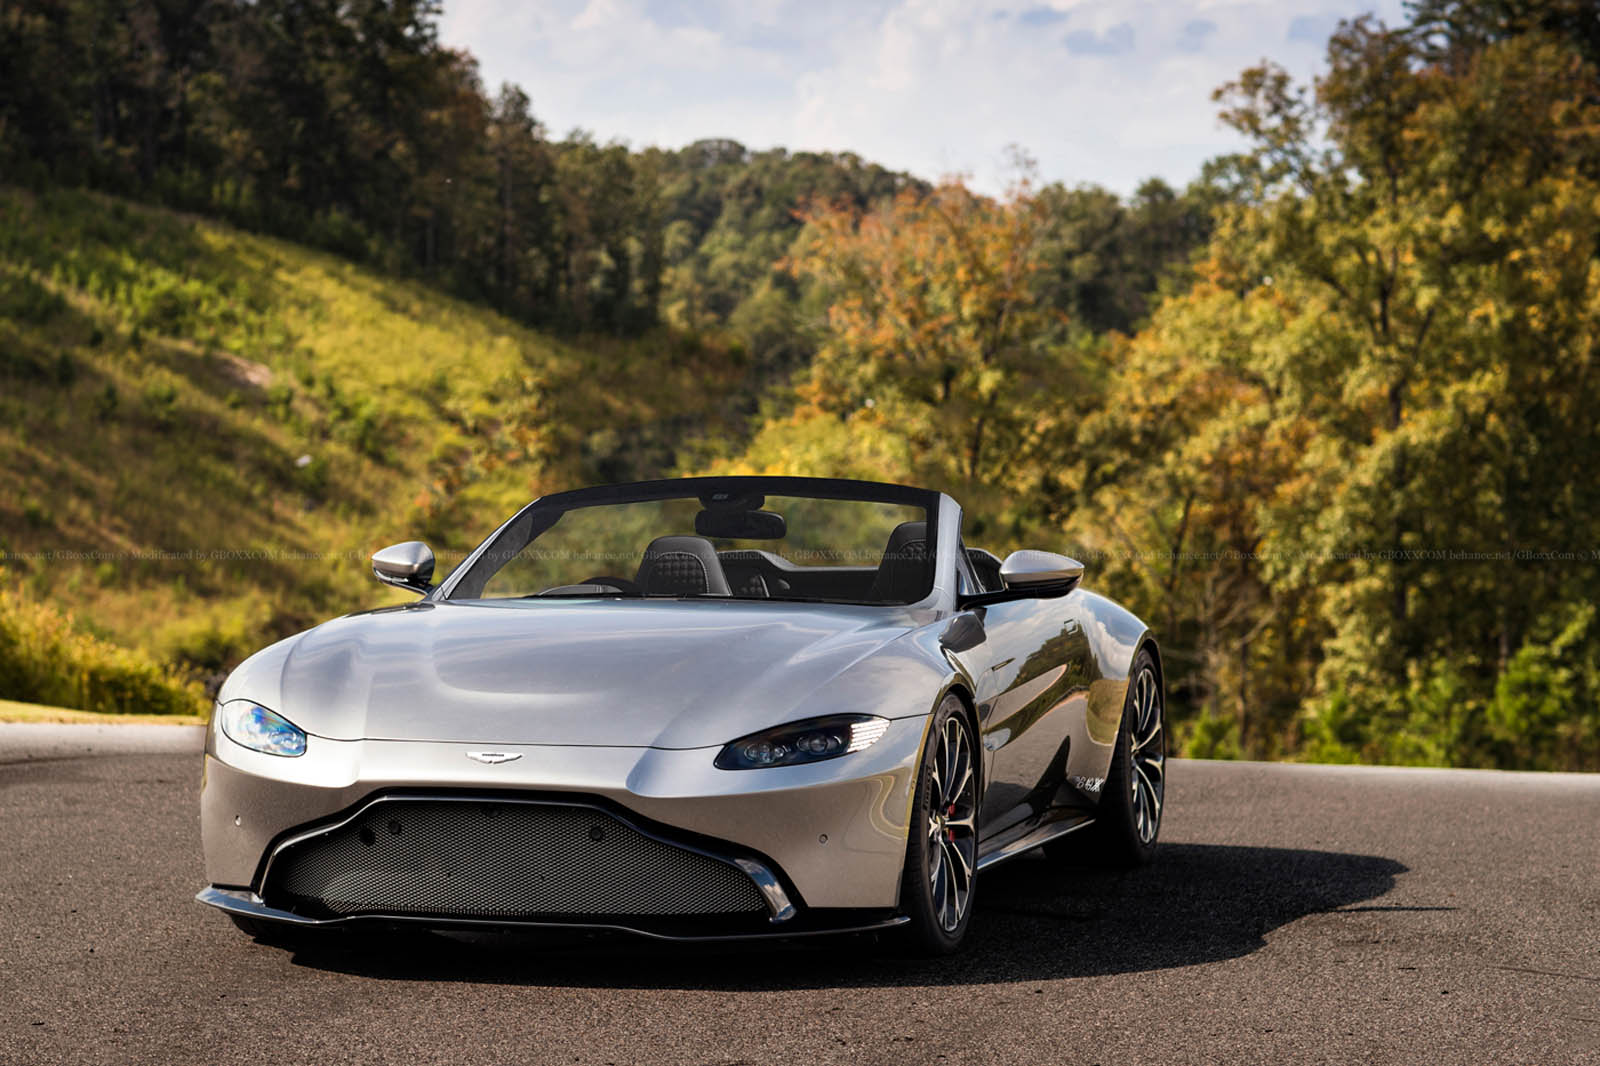 aston martin 39 s new vantage will look hot as a roadster too carscoops. Black Bedroom Furniture Sets. Home Design Ideas